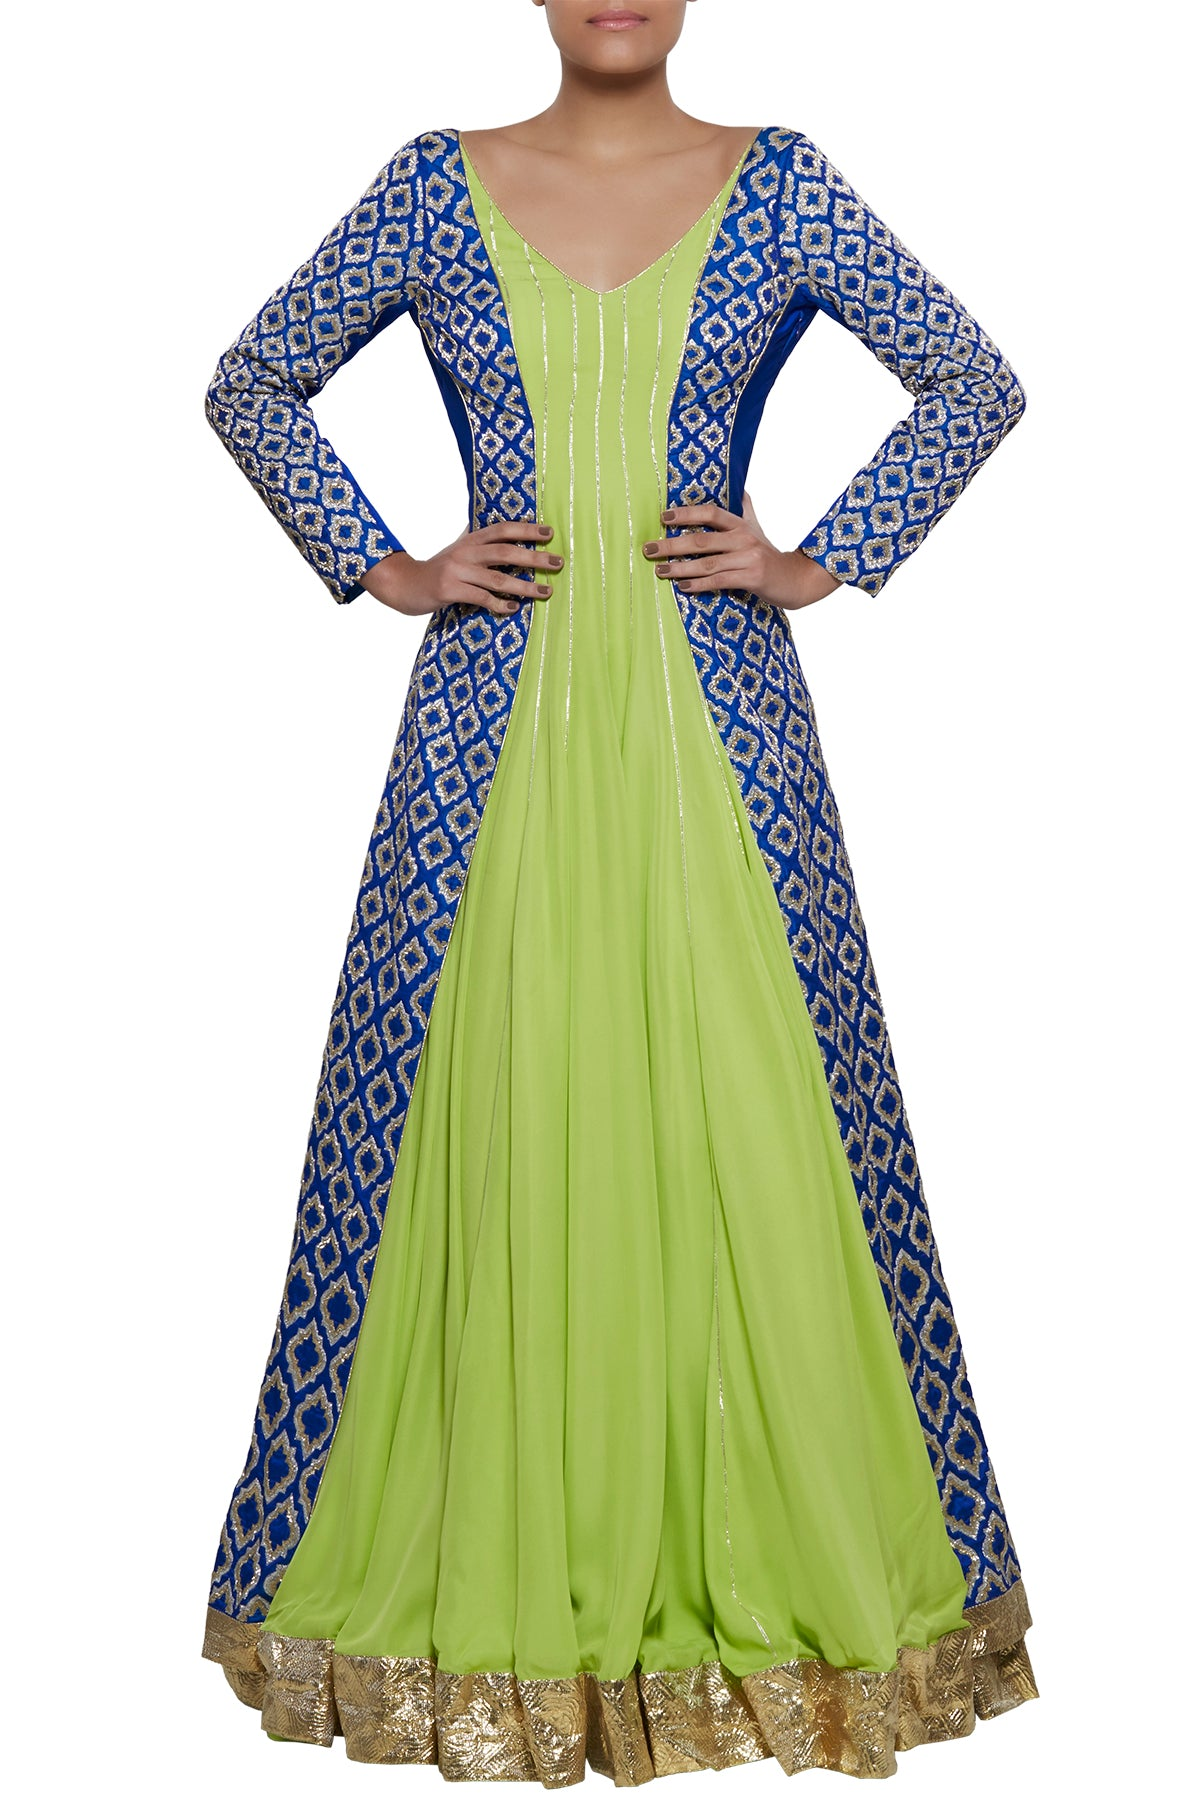 Sway the Stylease way in our effortless green drop-dead-down gown crafted in heavy georgette with its blue silk kardana embroidered jacket.